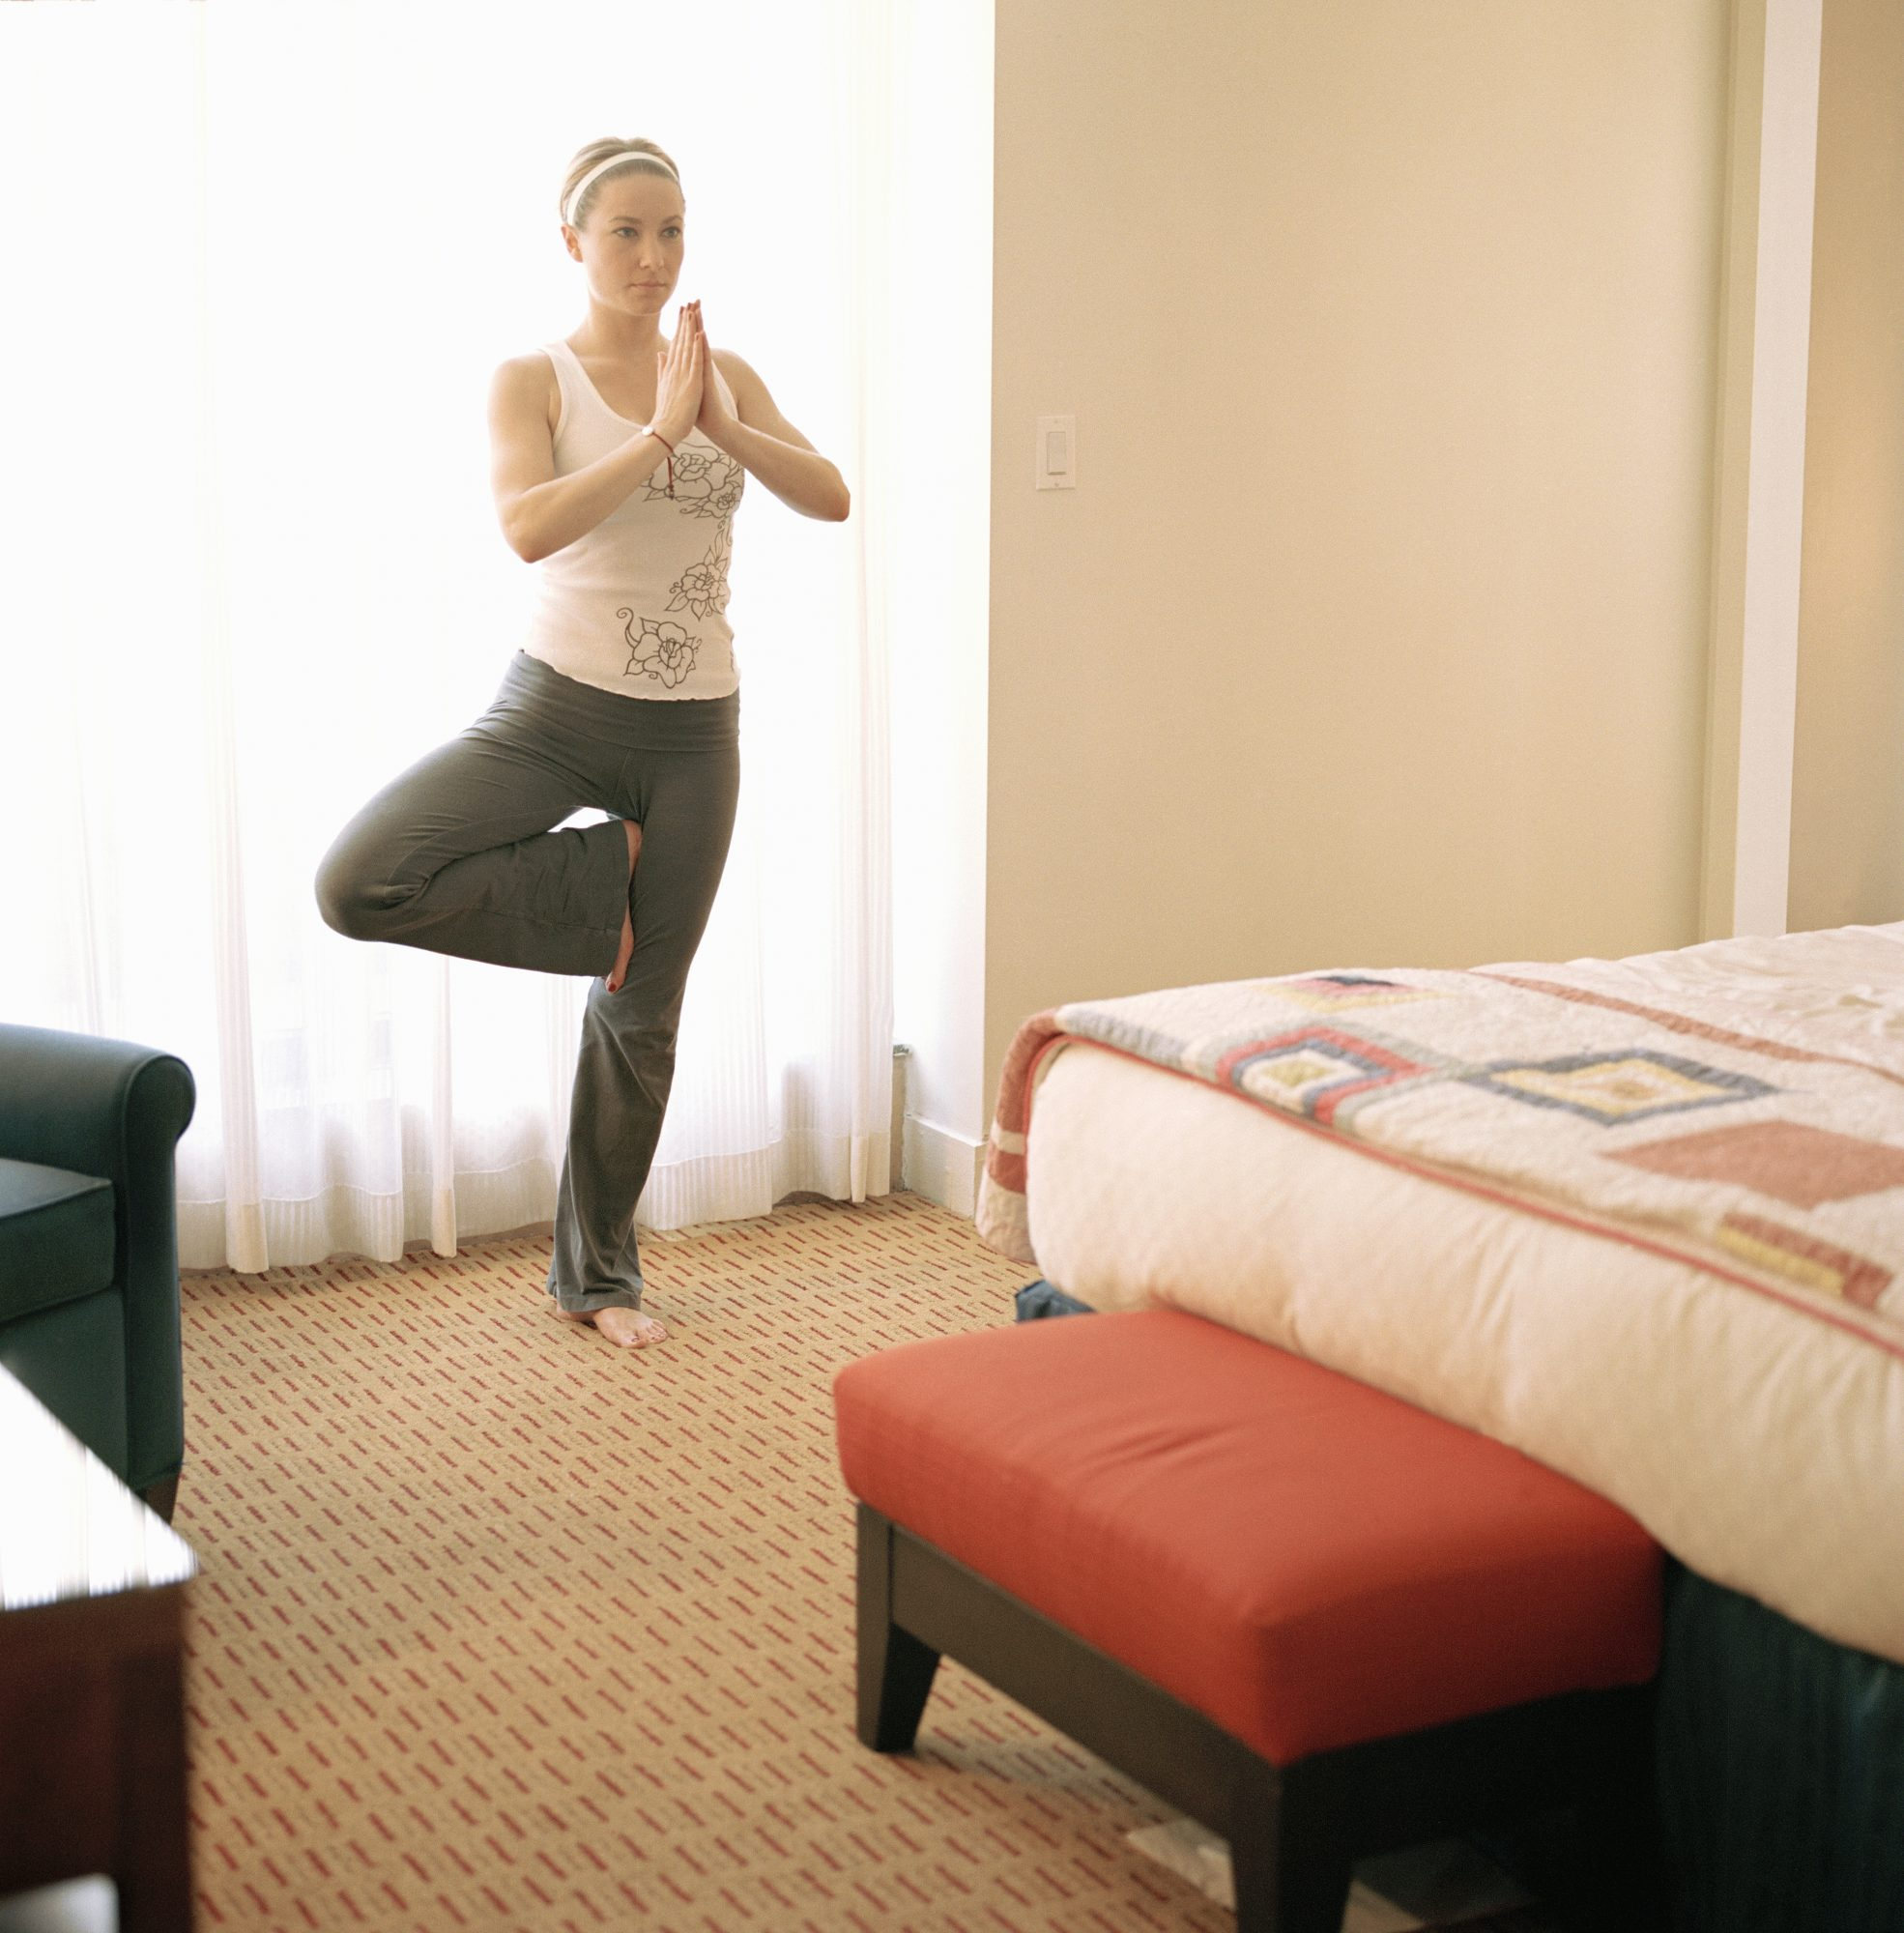 Turn your hotel room into a gym